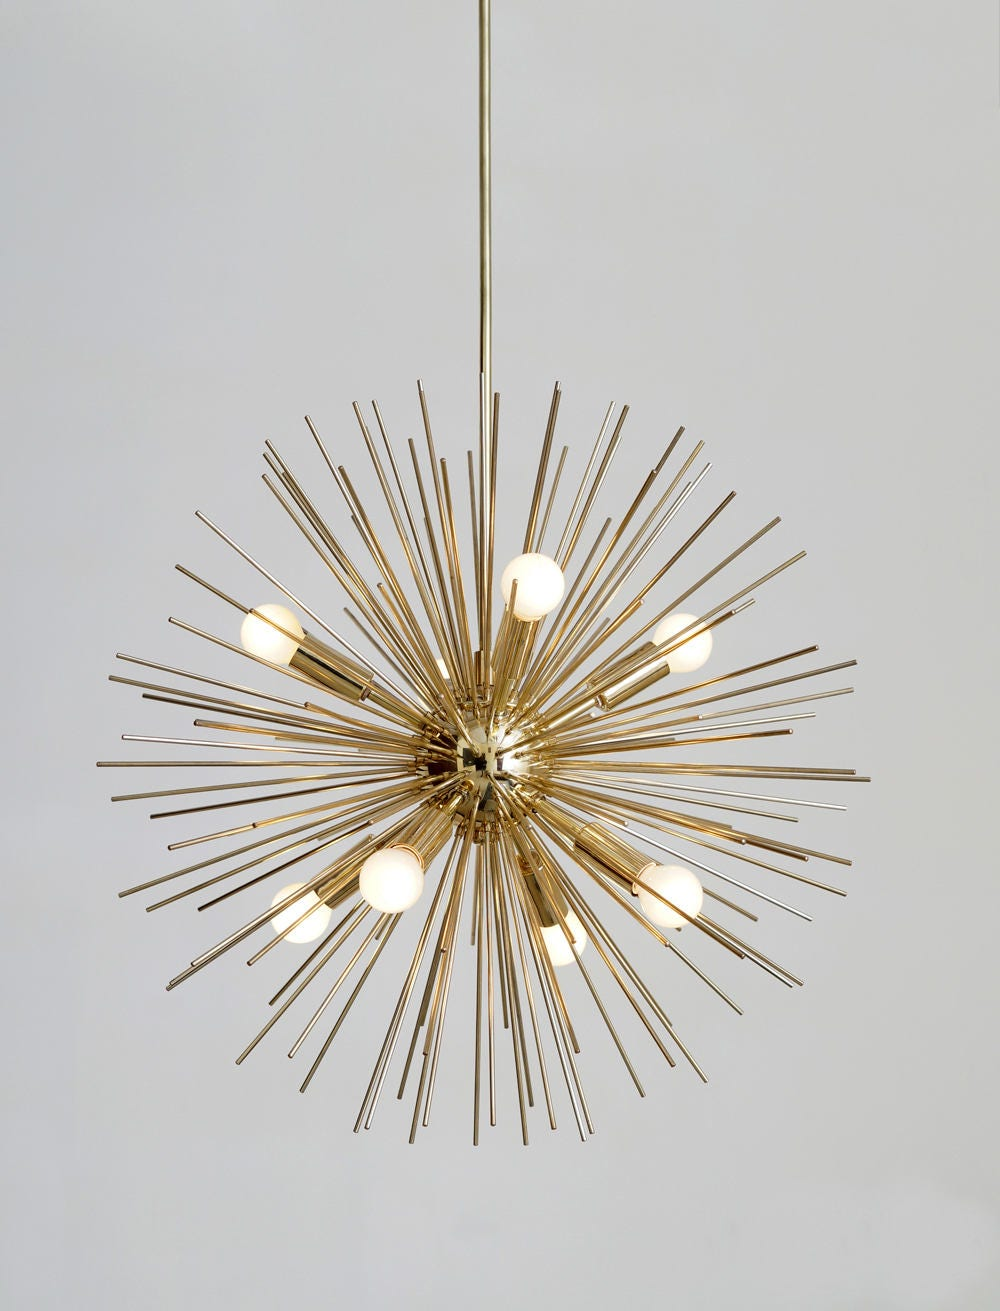 MidCentury Modern Large Round Starburst Chandelier Polished Brass Light Pendant 8 bulb 22diam